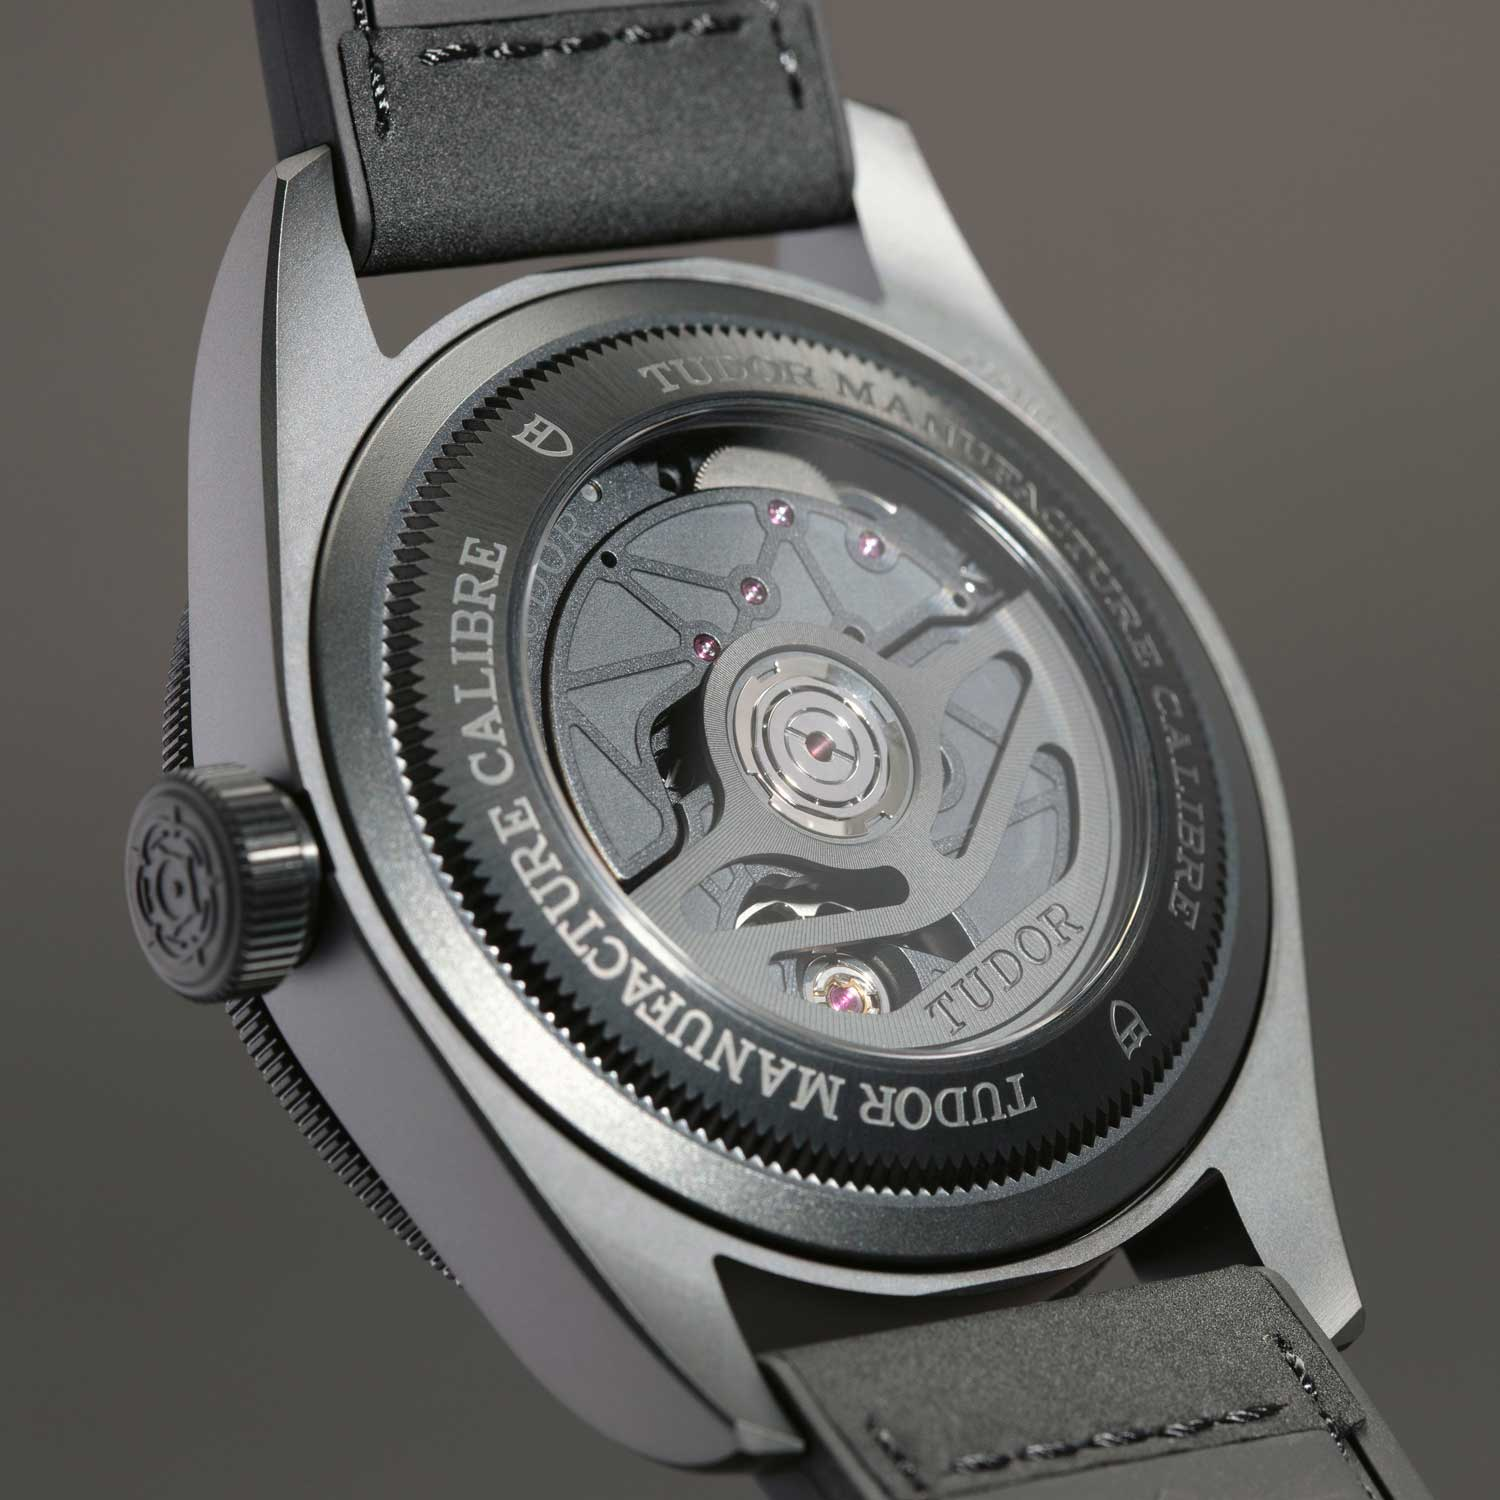 The new Black Bay Ceramic comes with a manufacture calibre and a Master Chronometer certification from METAS.